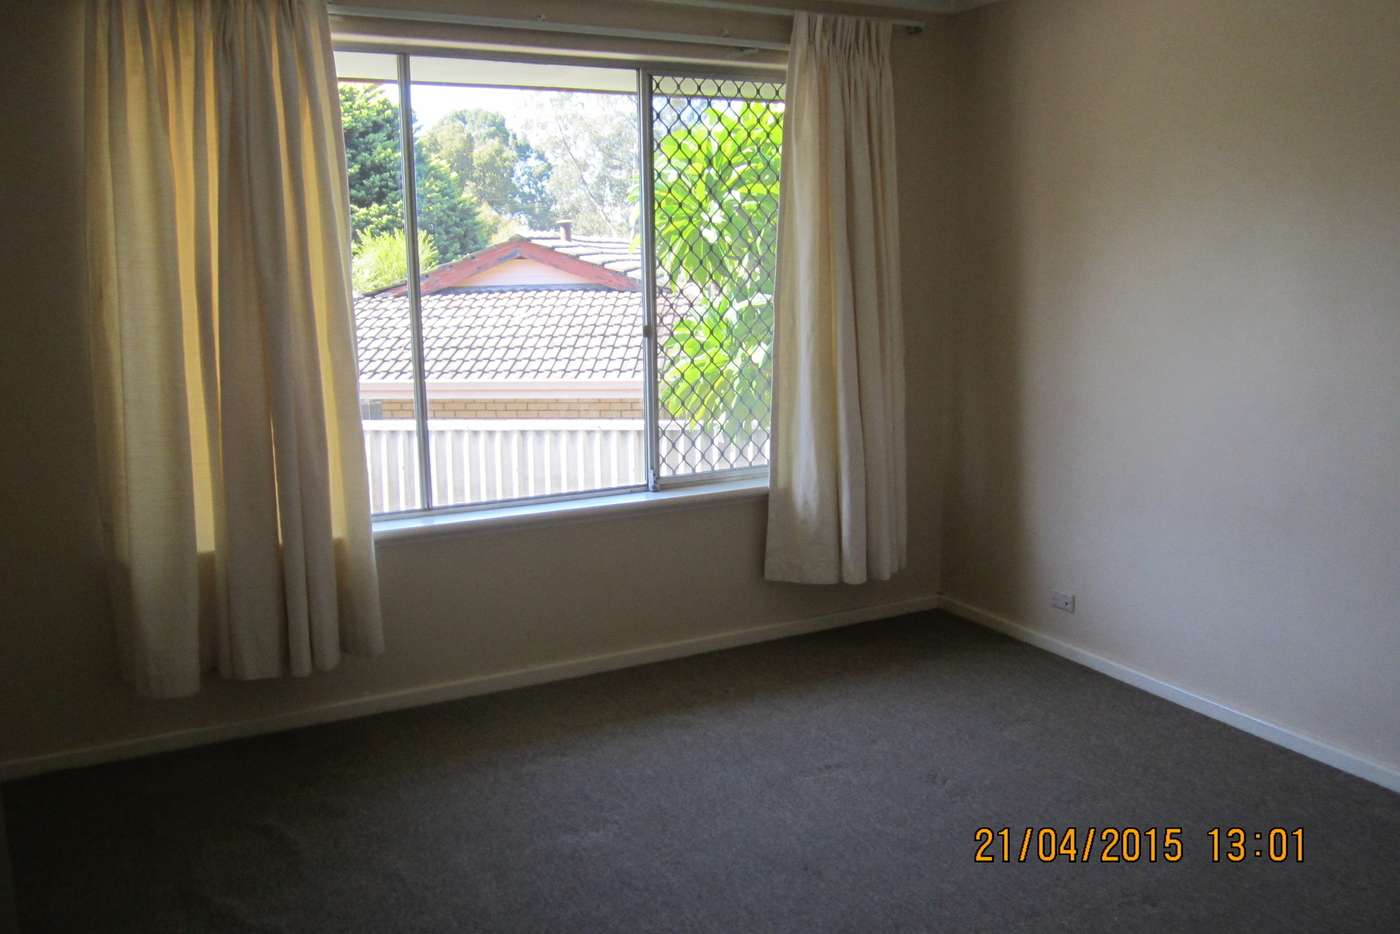 Sixth view of Homely house listing, 6 Deverell Way, Bentley WA 6102